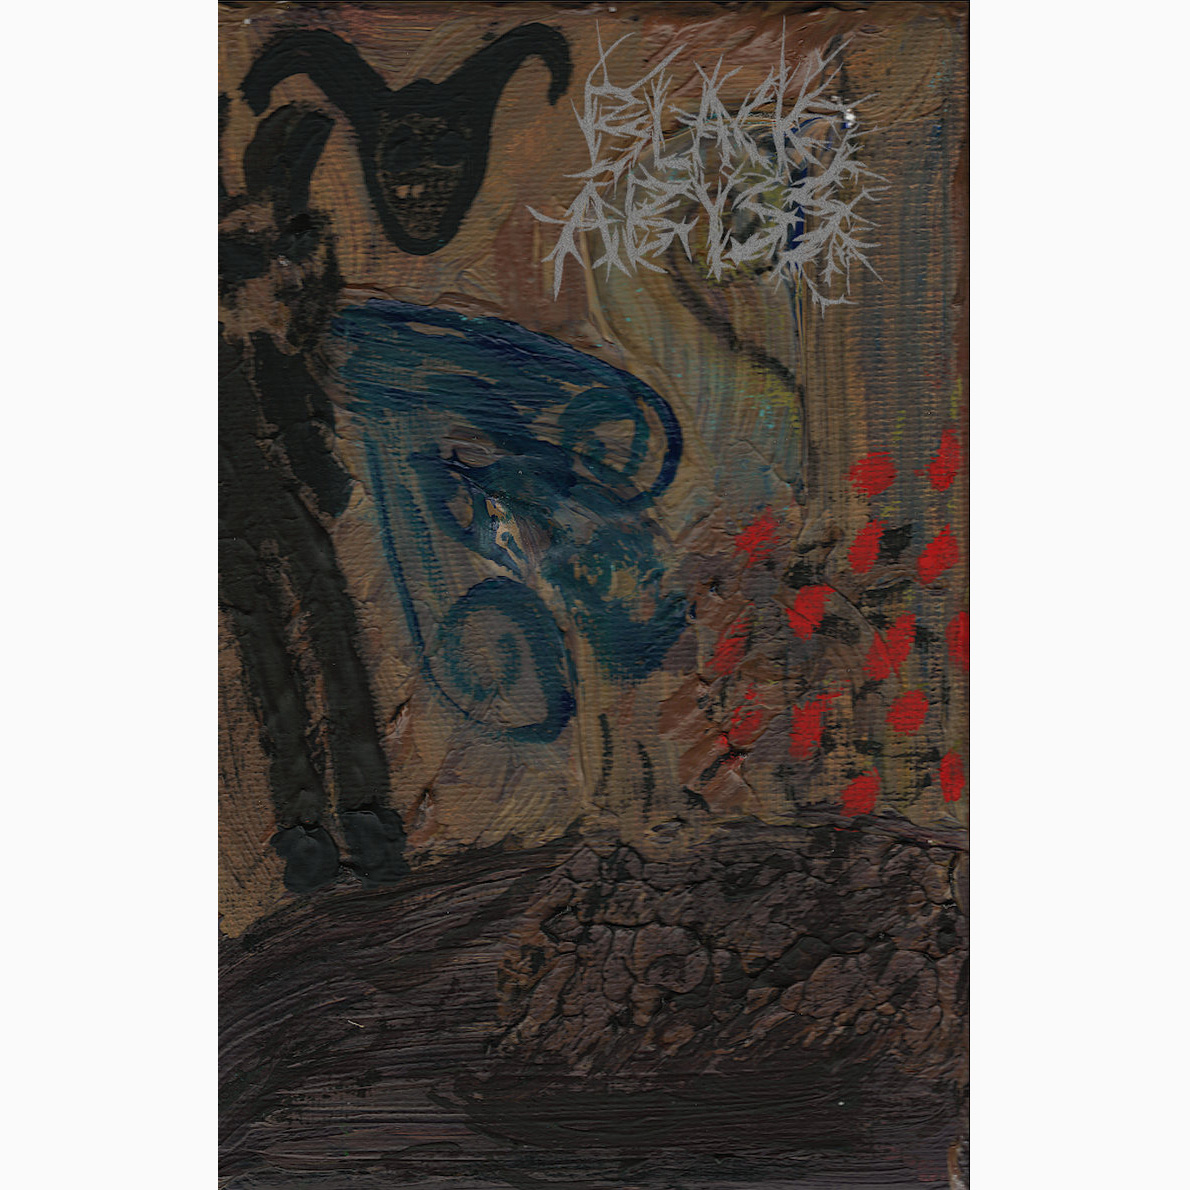 BLACK ABYSS - Bestial Consciousness